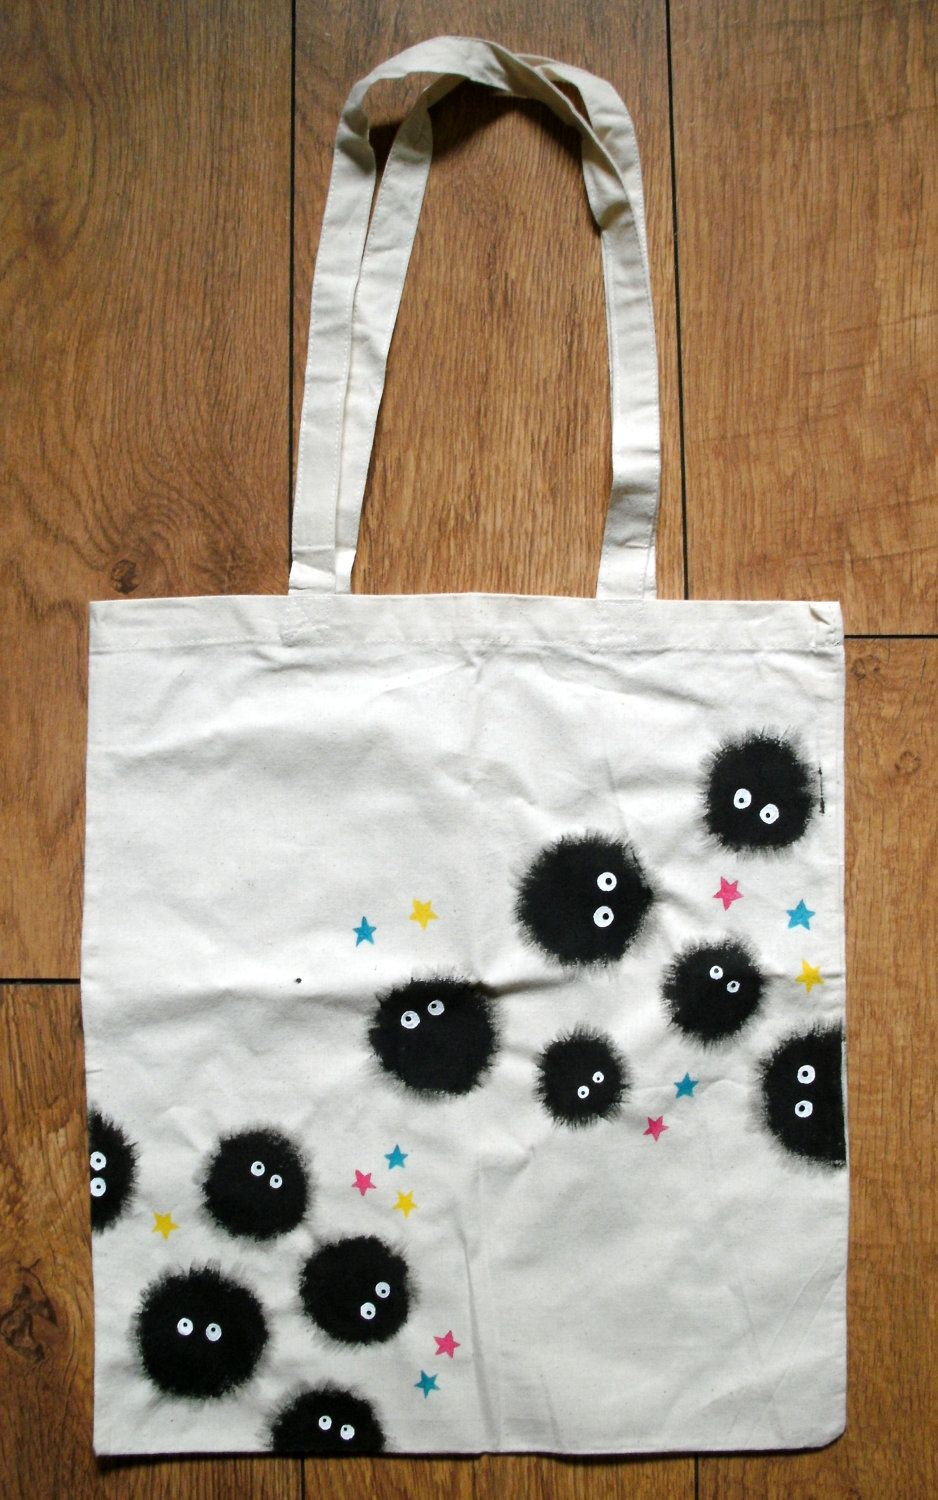 Spirited Away Soot Sprite Cotton Tote Bag - Studio Ghibli - Hand Painted. £10.00, via Etsy.